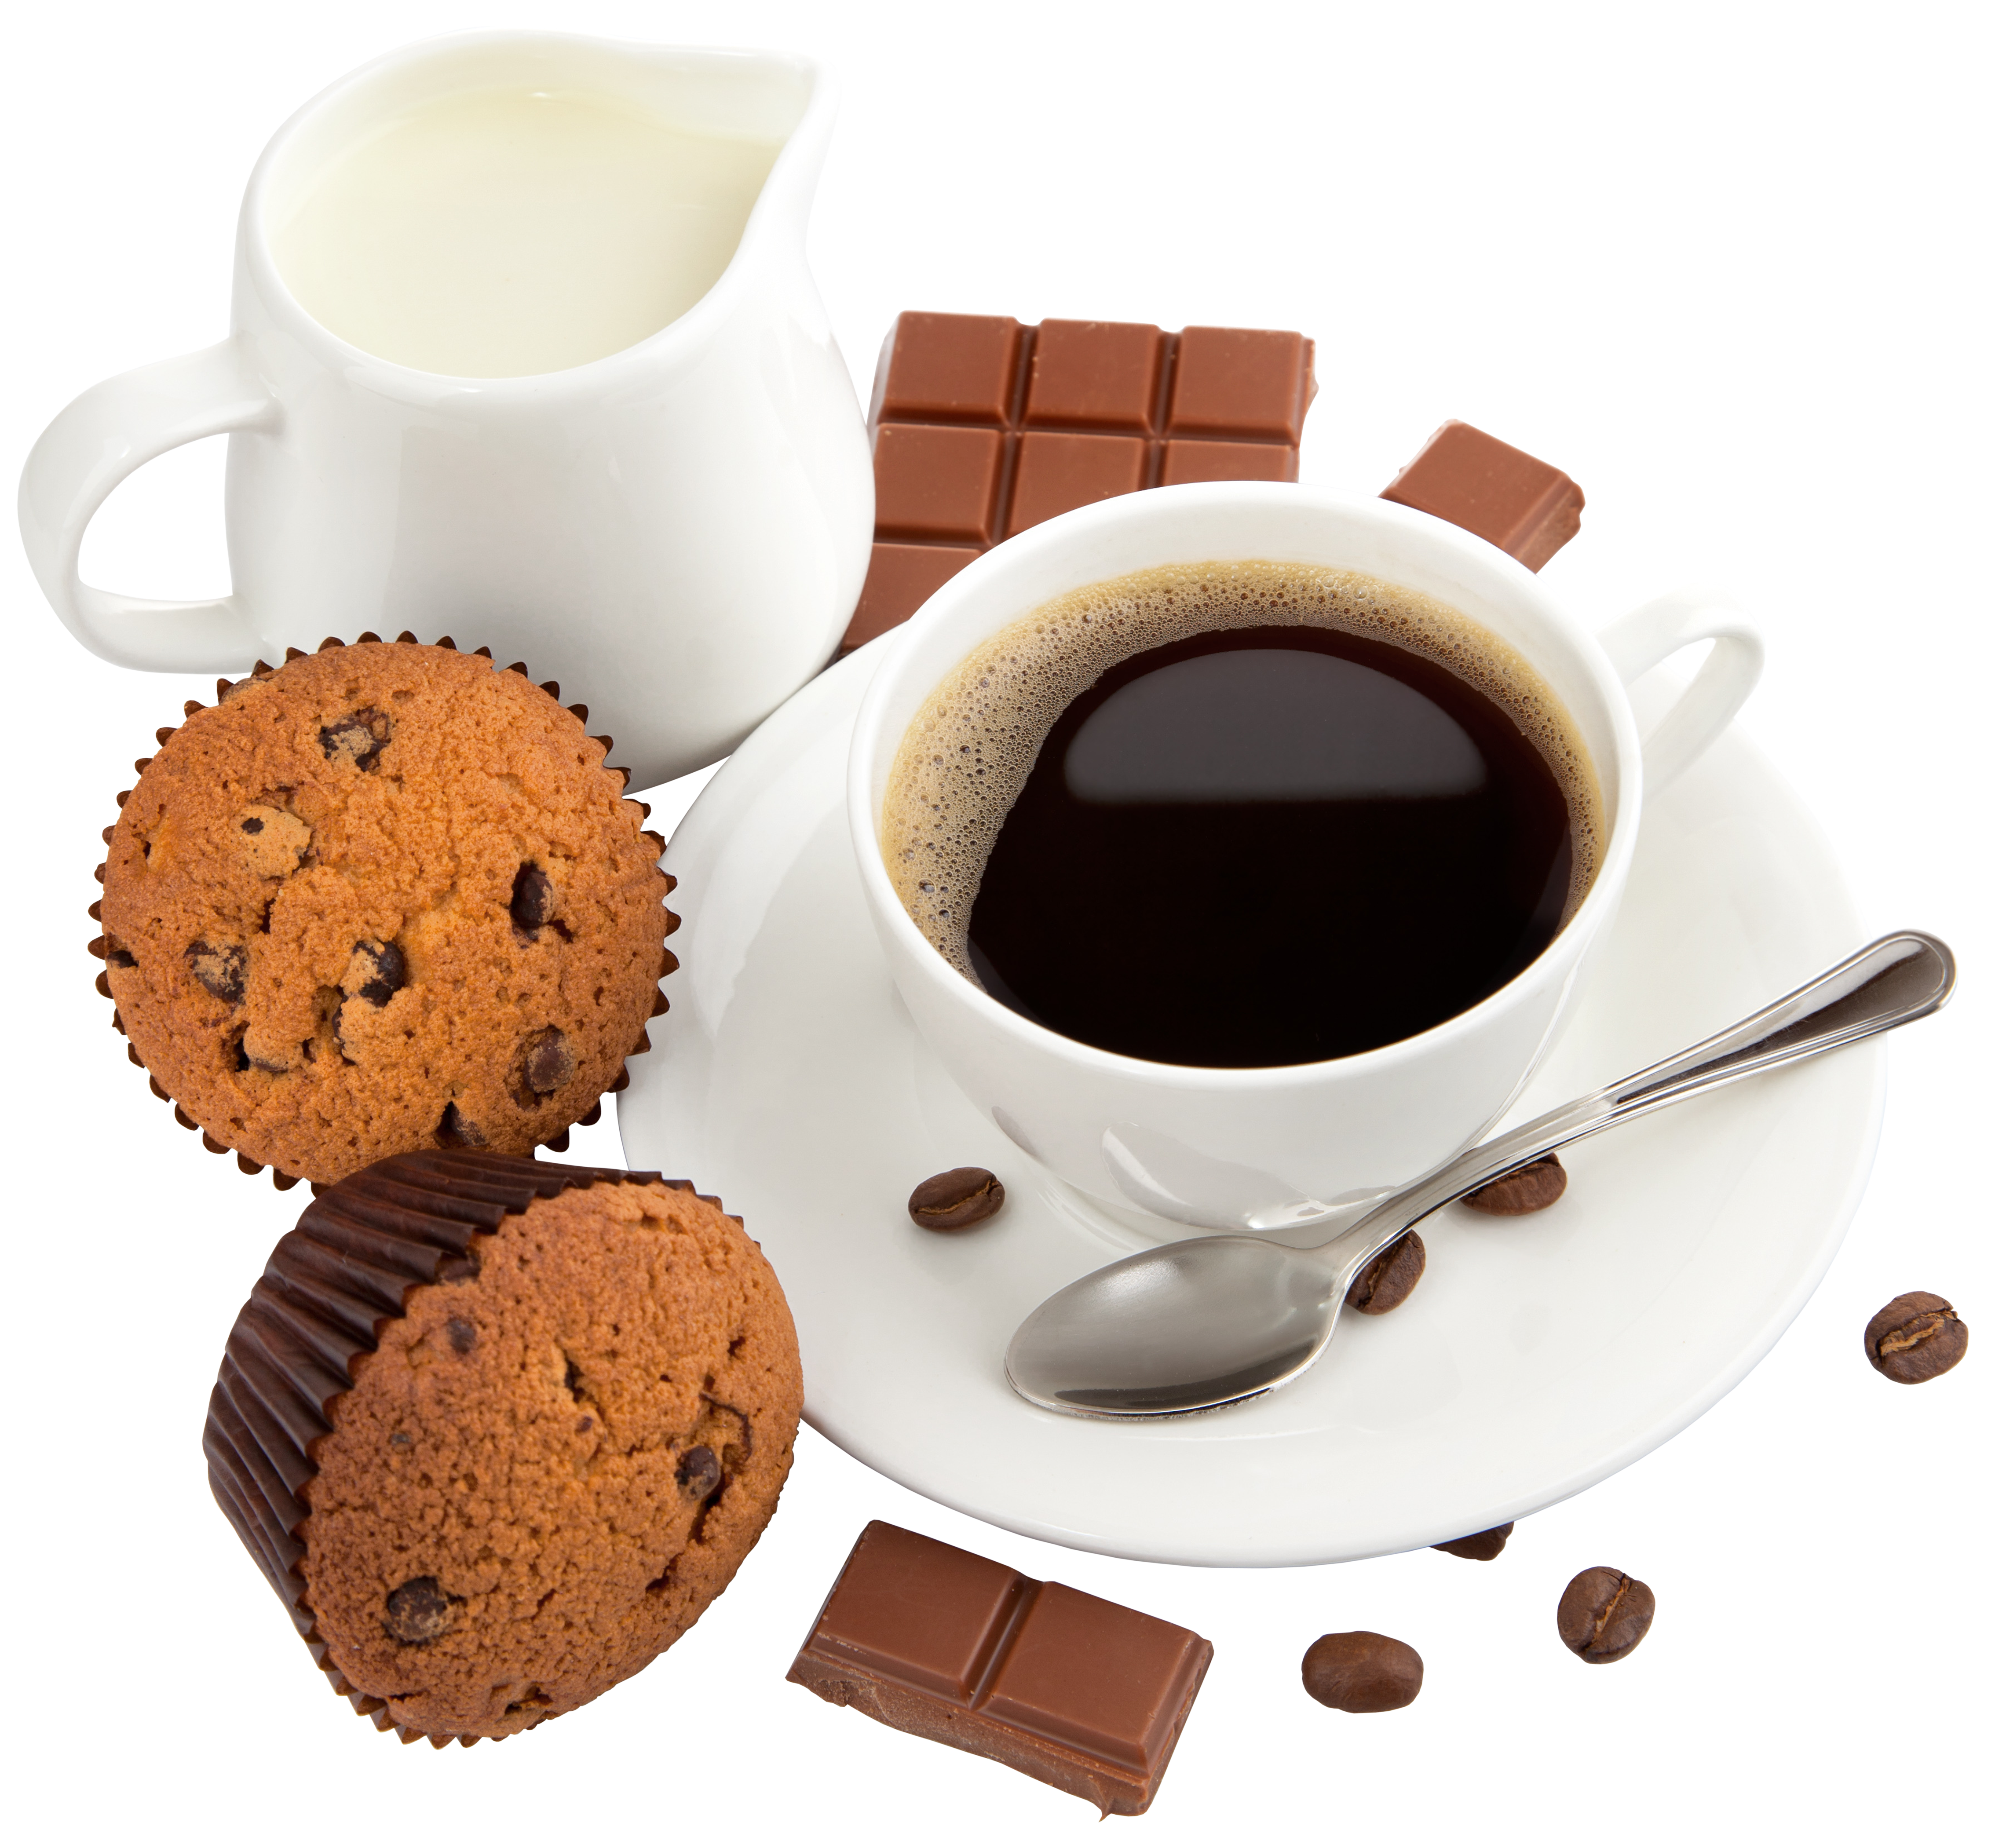 Coffee with muffins and. Drinks clipart milk powder